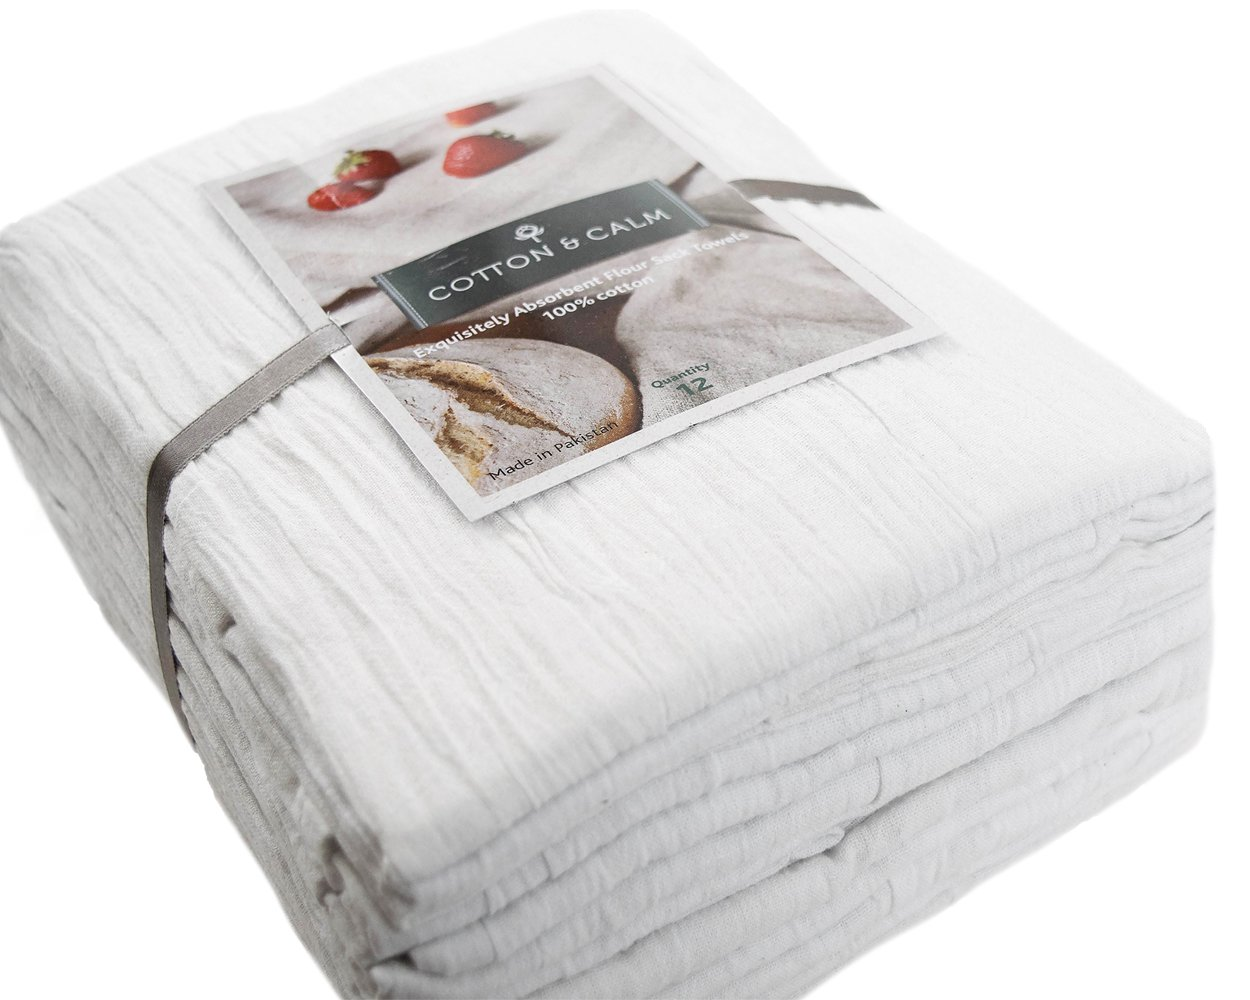 Cotton & Calm Exquisitely Absorbent Flour Sack Dish Towels (12 Pack, 28'' x 28''), 100% Cotton White Dish Cloths Kitchen Towels - Crafted for Home, Restaurant, Bar, Hotel Use